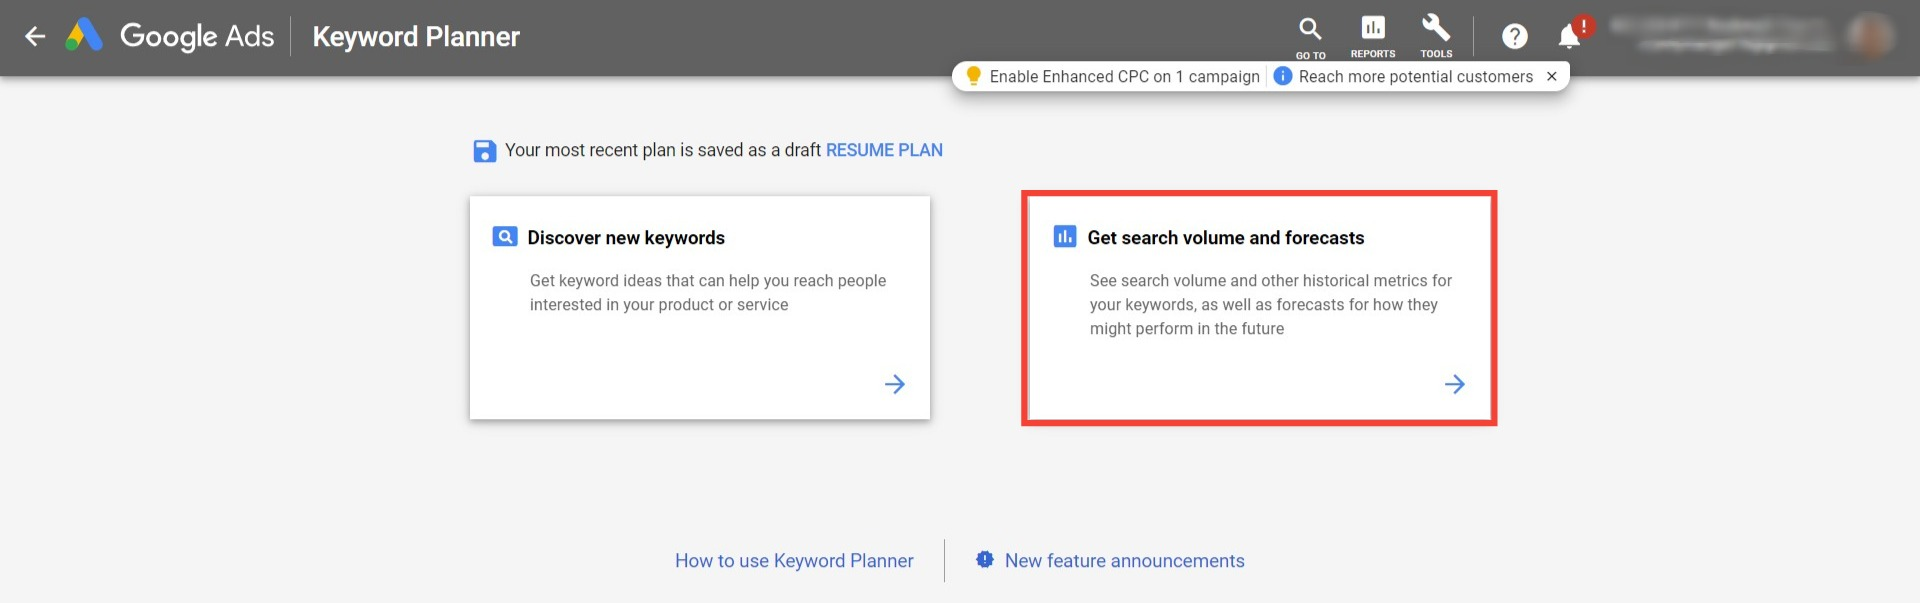 Keyword Planner - Bookmark Your Life Inc. - Google Ads